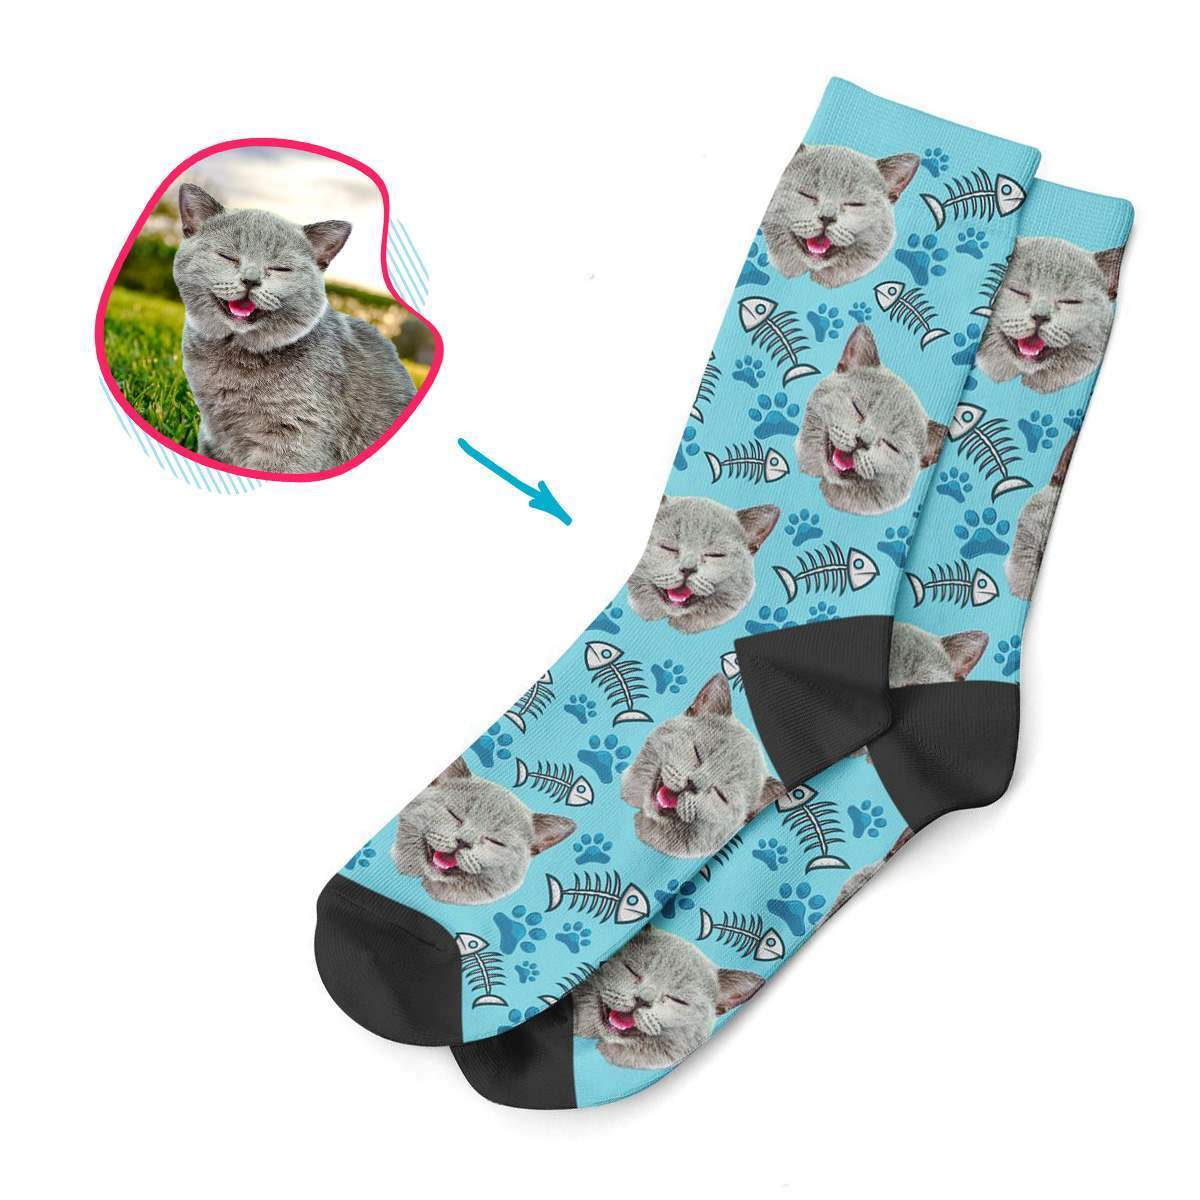 blue Cat socks personalized with photo of face printed on them